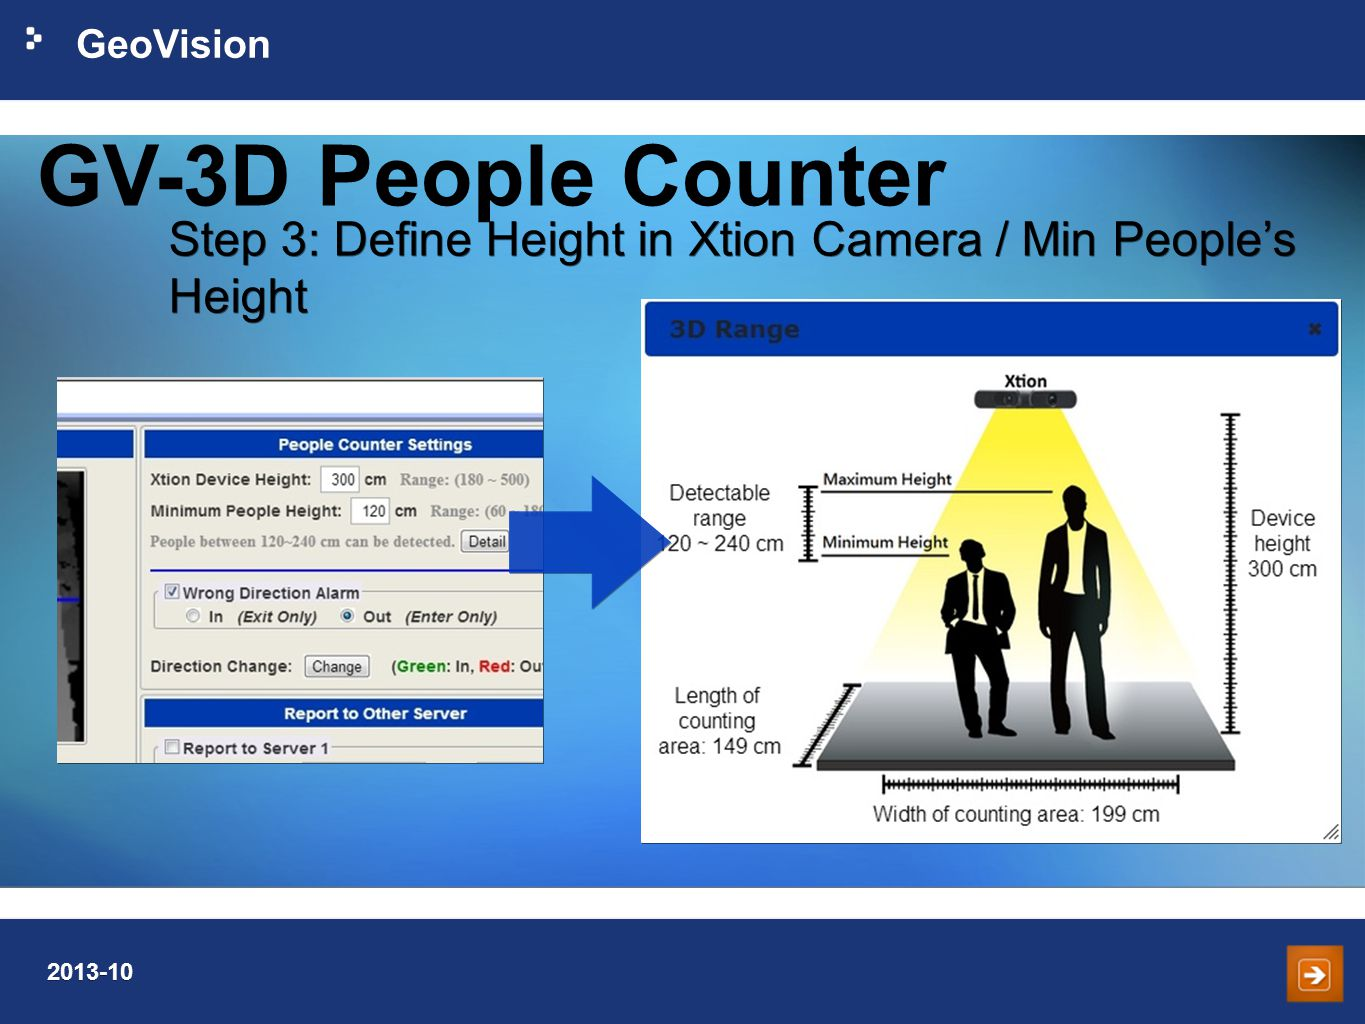 GeoVision 2013-10 Step 3: Define Height in Xtion Camera / Min People's Height GV-3D People Counter